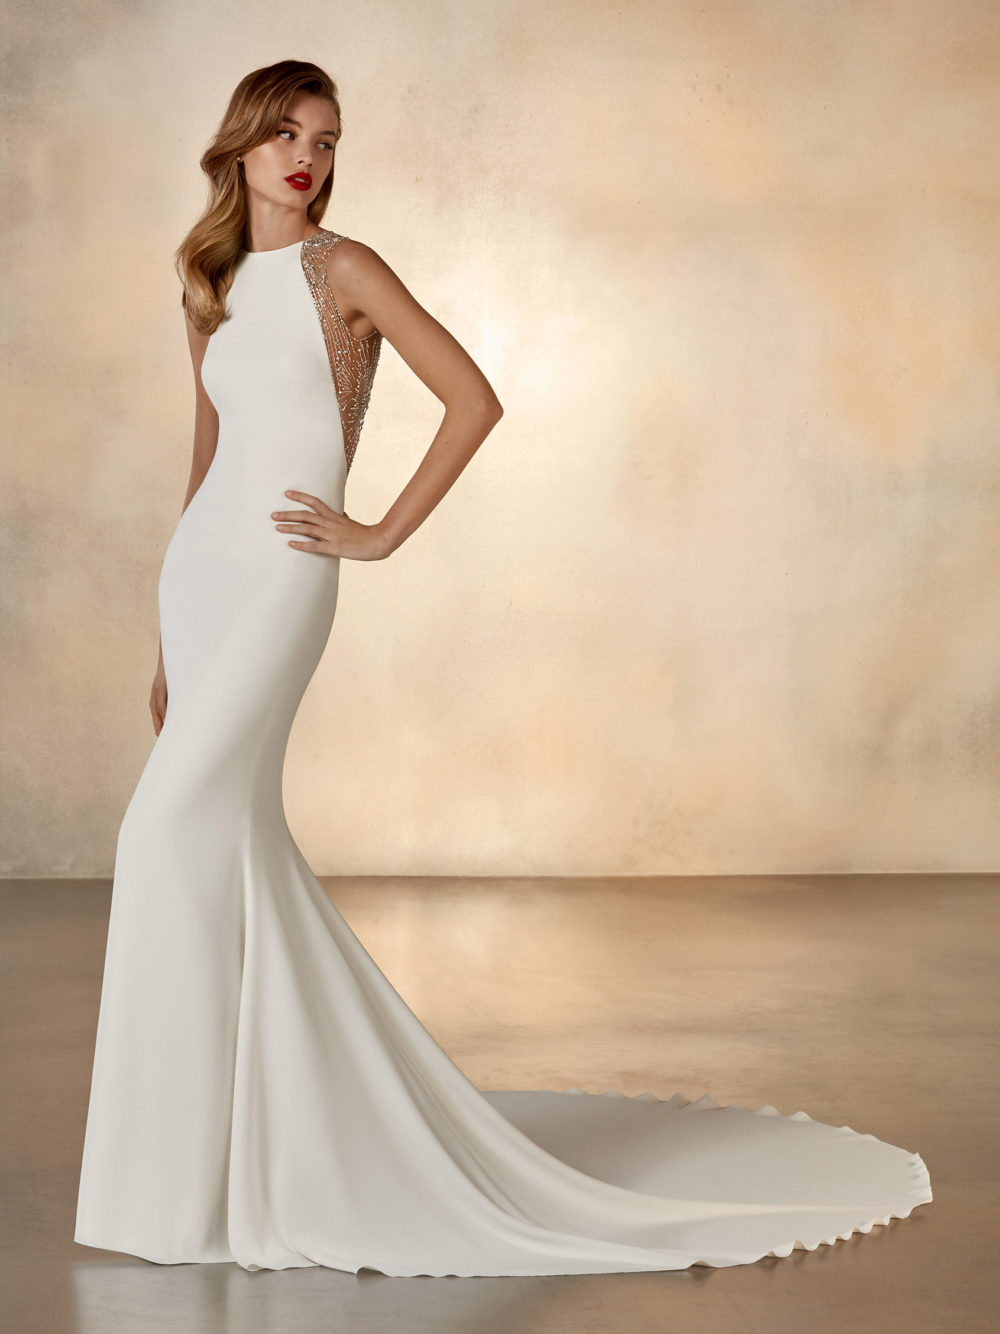 Pronovias Atelier Collection Galaxy Wedding Gown Dress 2020 back Detail Side